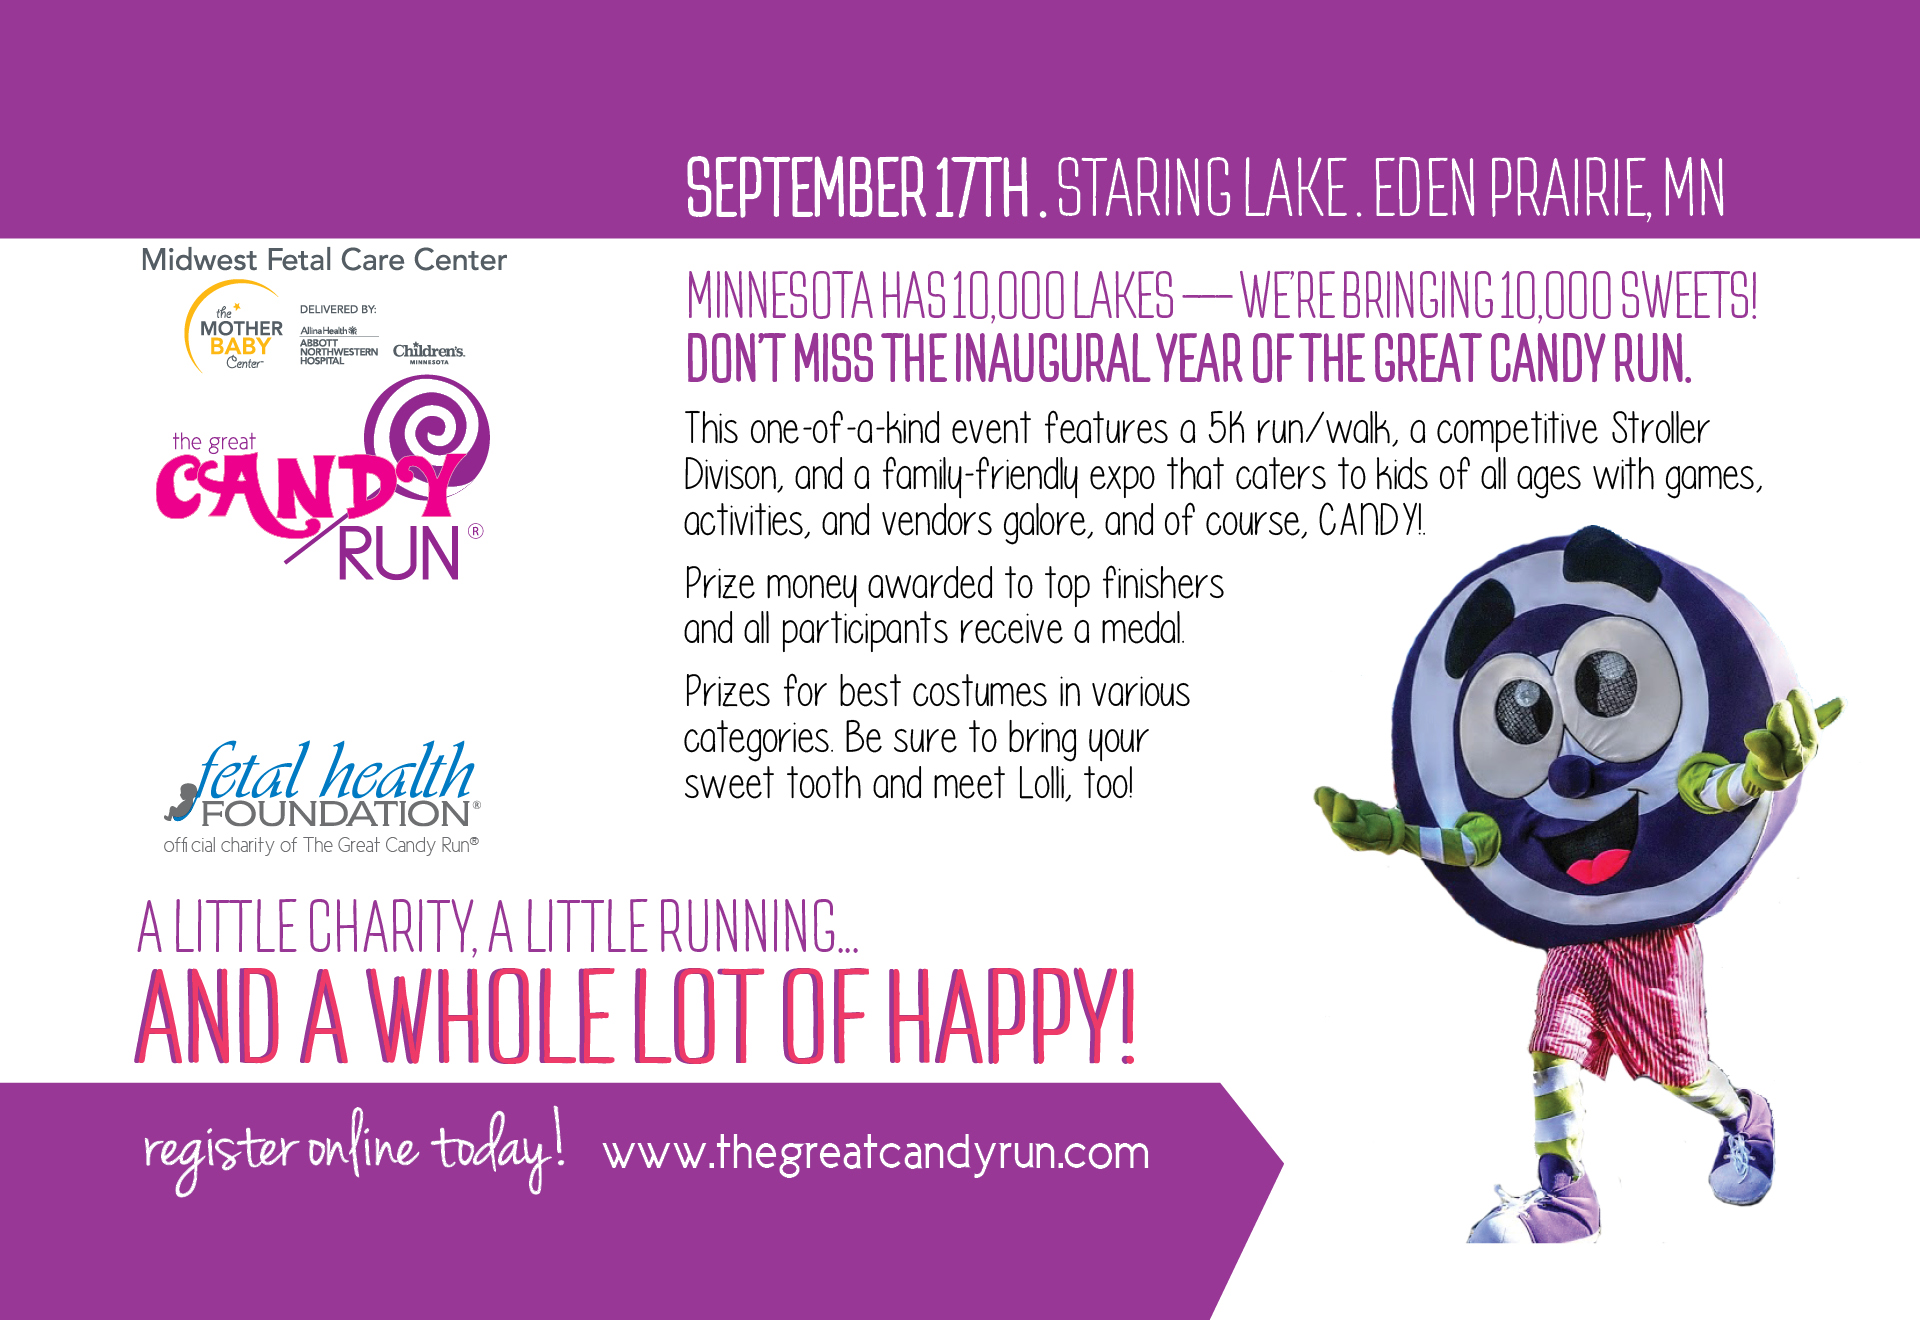 great candy run save the date card minneapolis